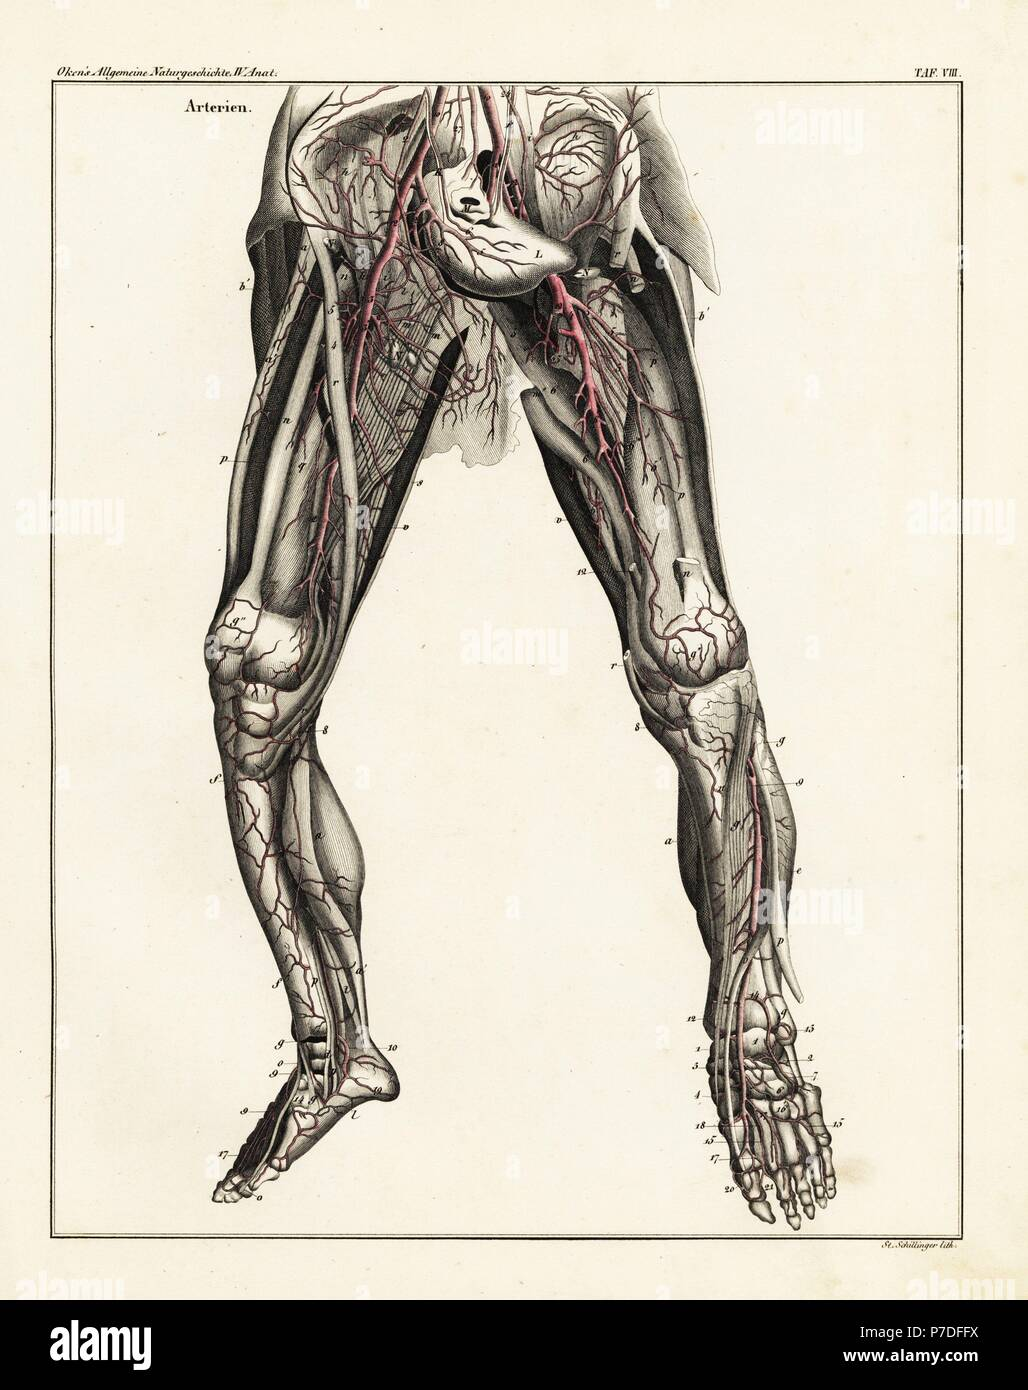 Anatomy Of The Human Arterial System In The Legs Handcoloured